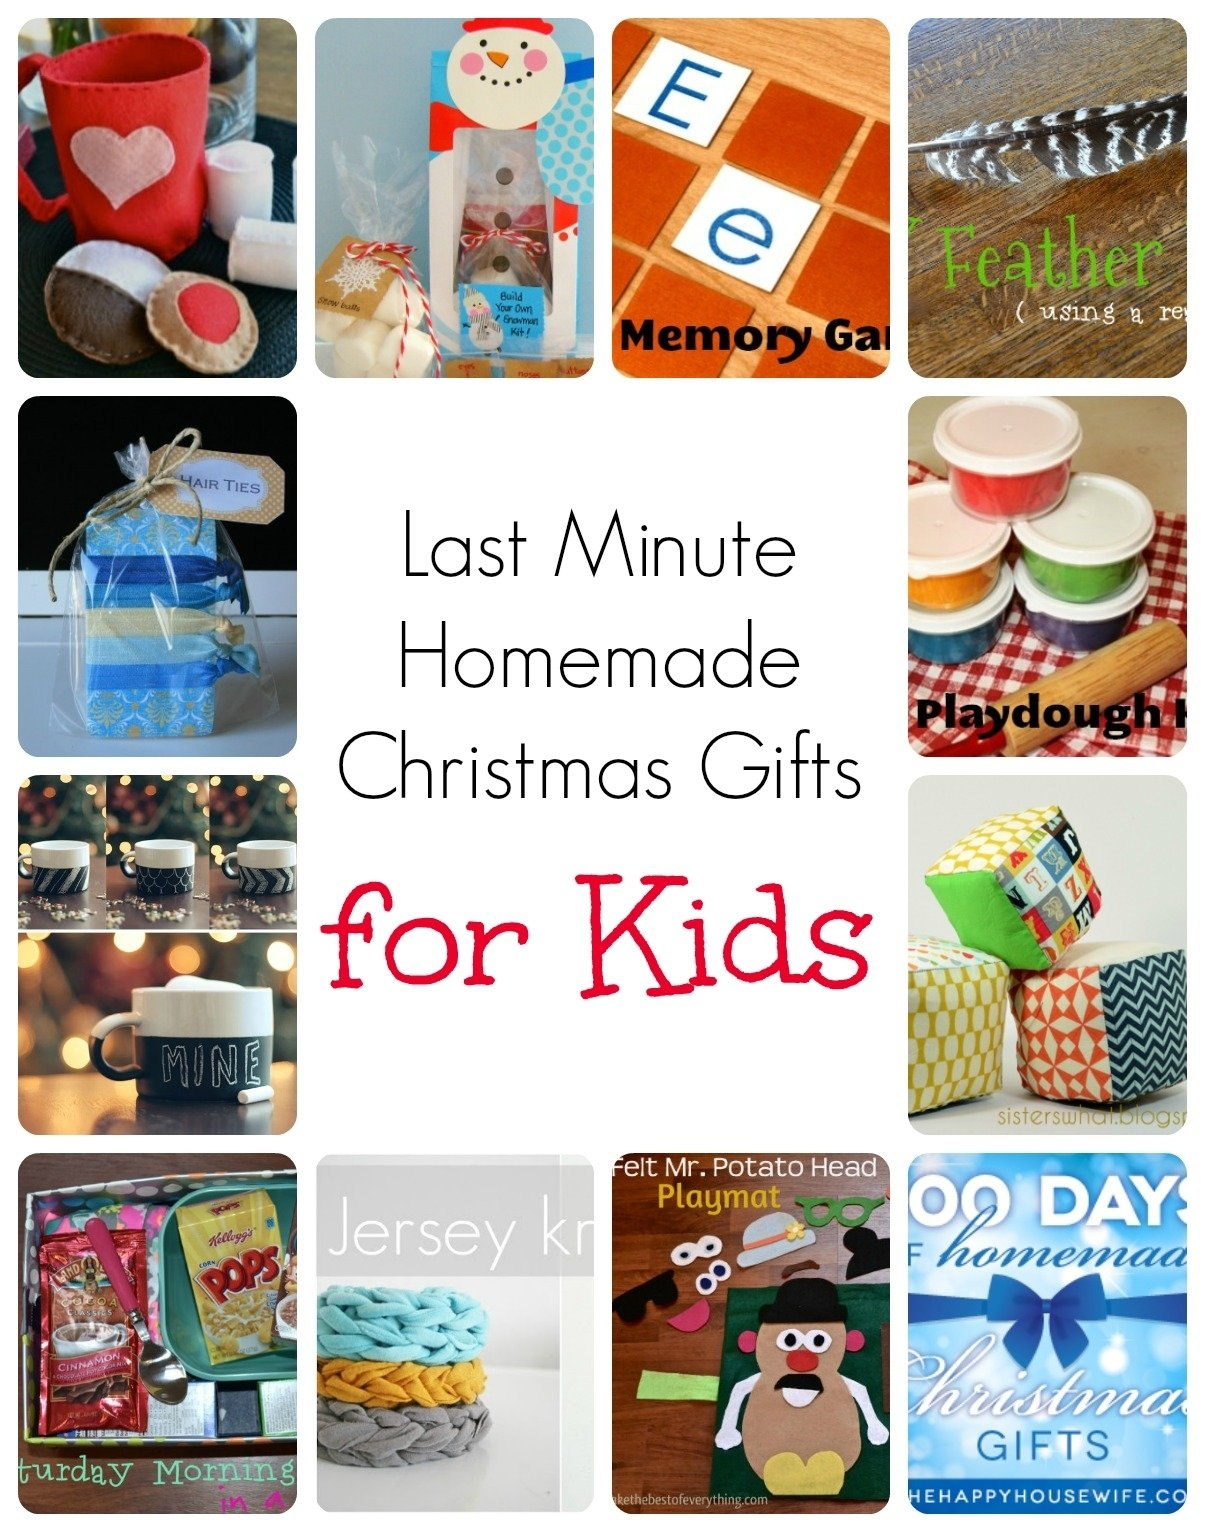 last minute homemade christmas gifts for kids | homemade christmas